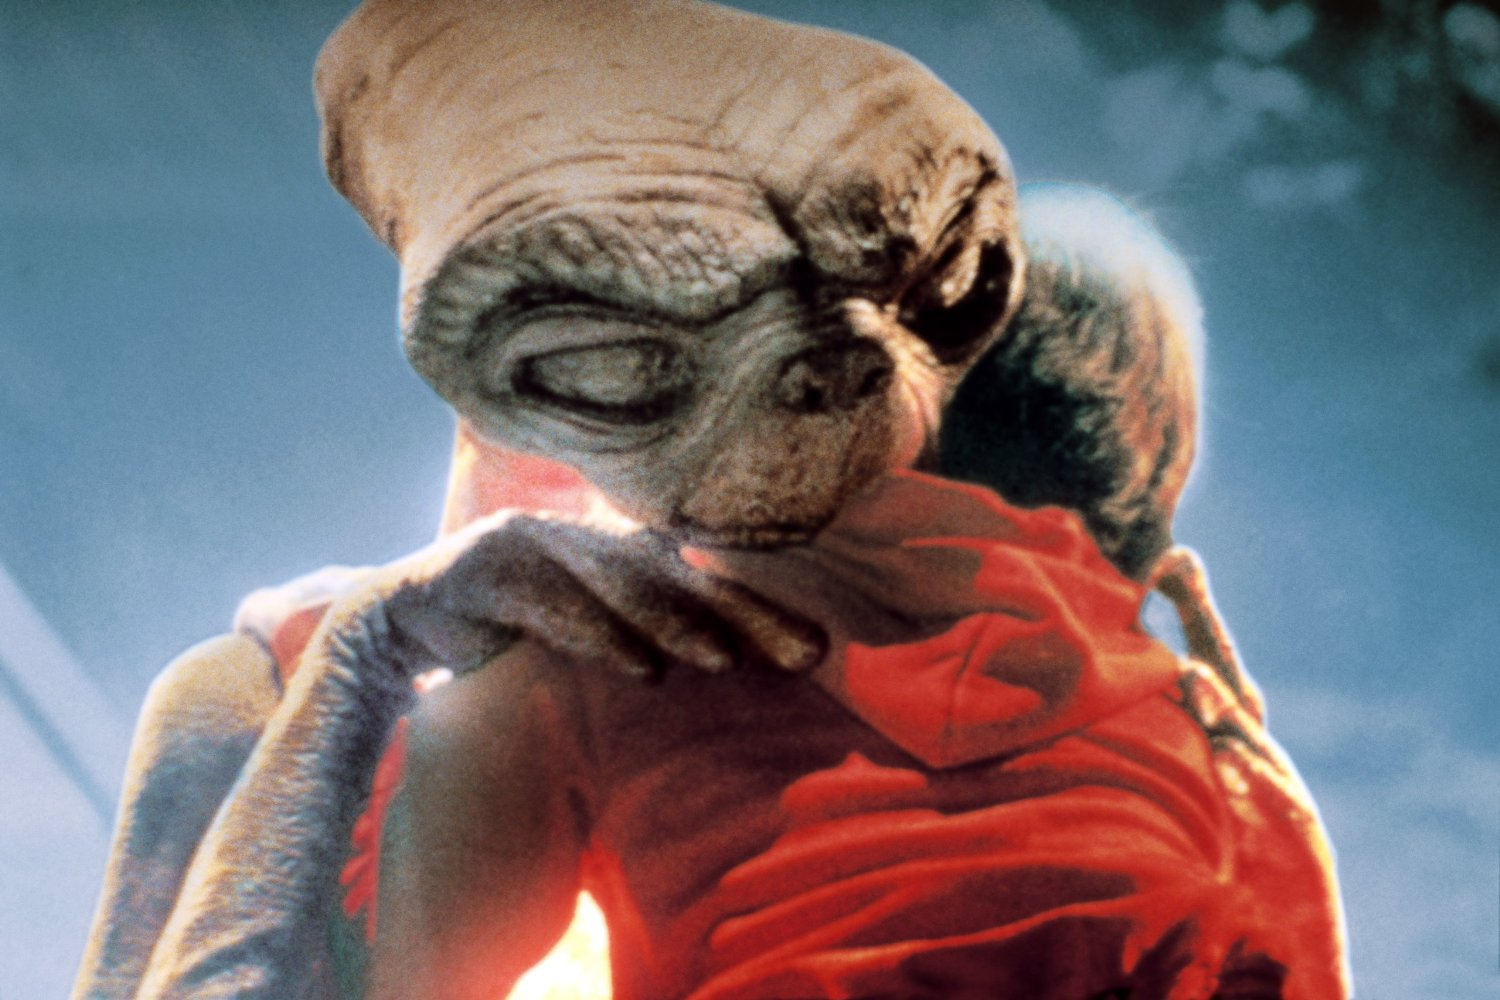 See E.T. the Extra-Terrestrial as You've Never Seen It ...